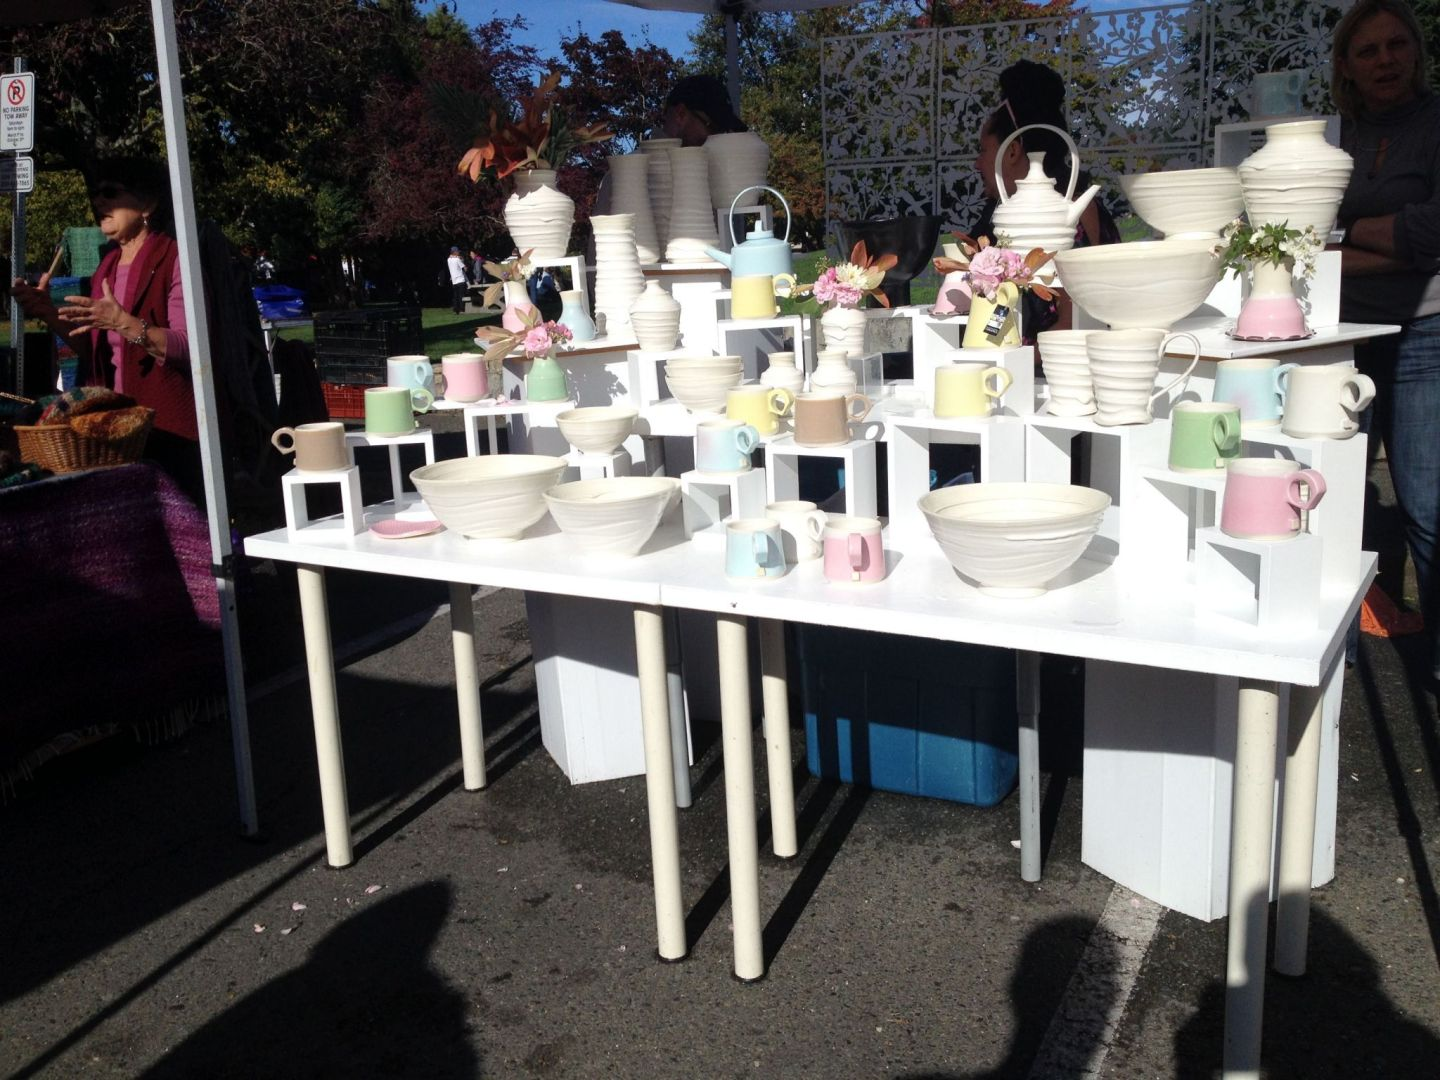 Crafts from Salt Spring Island Saturday market